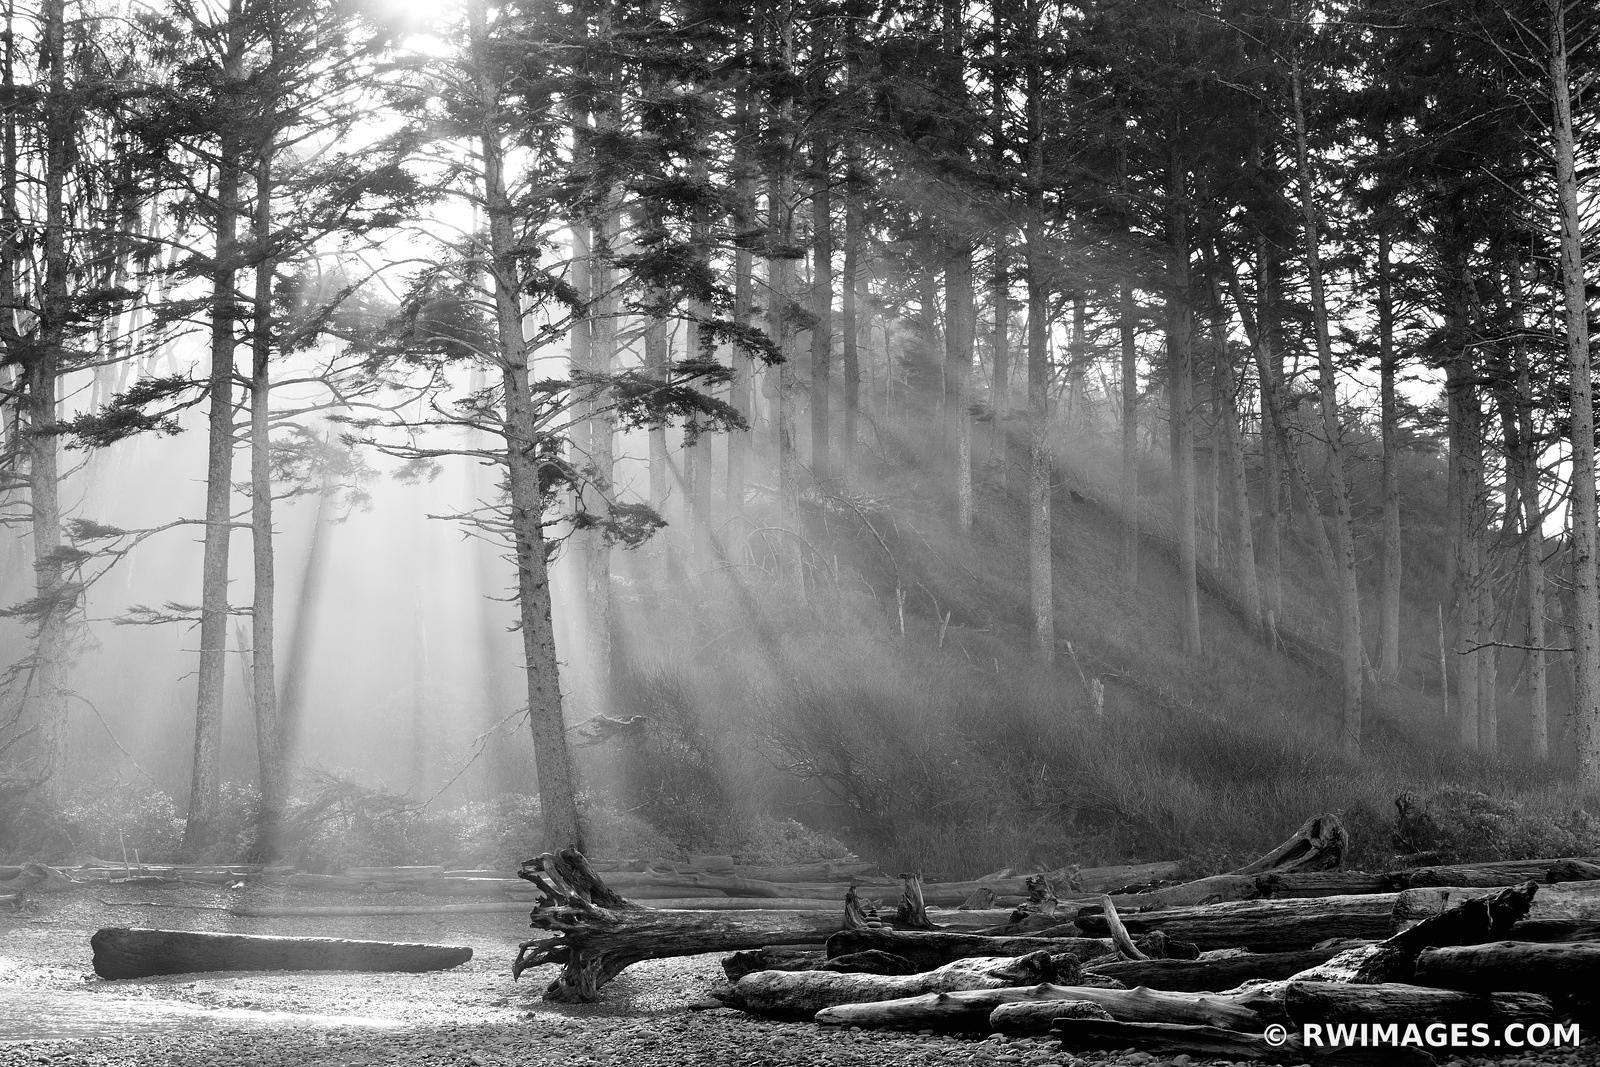 SUNRISE COASTAL FOREST OLYMPIC NATIONAL PARK WASHINGTON PACIFIC NORTHWEST BLACK AND WHITE HORIZONTAL